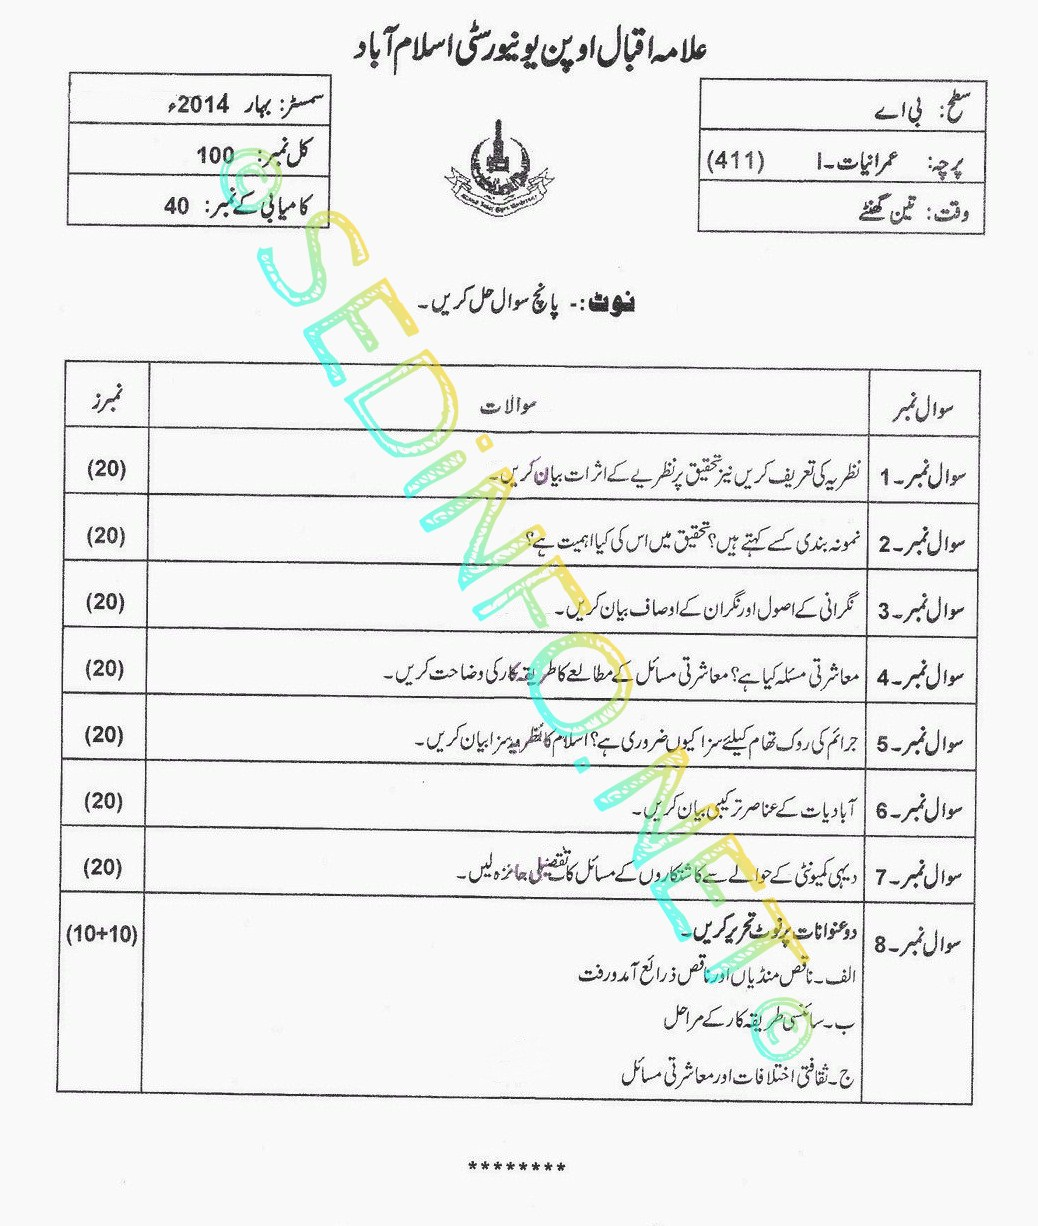 BA AIOU Code 411 Past Papers Spring 2014